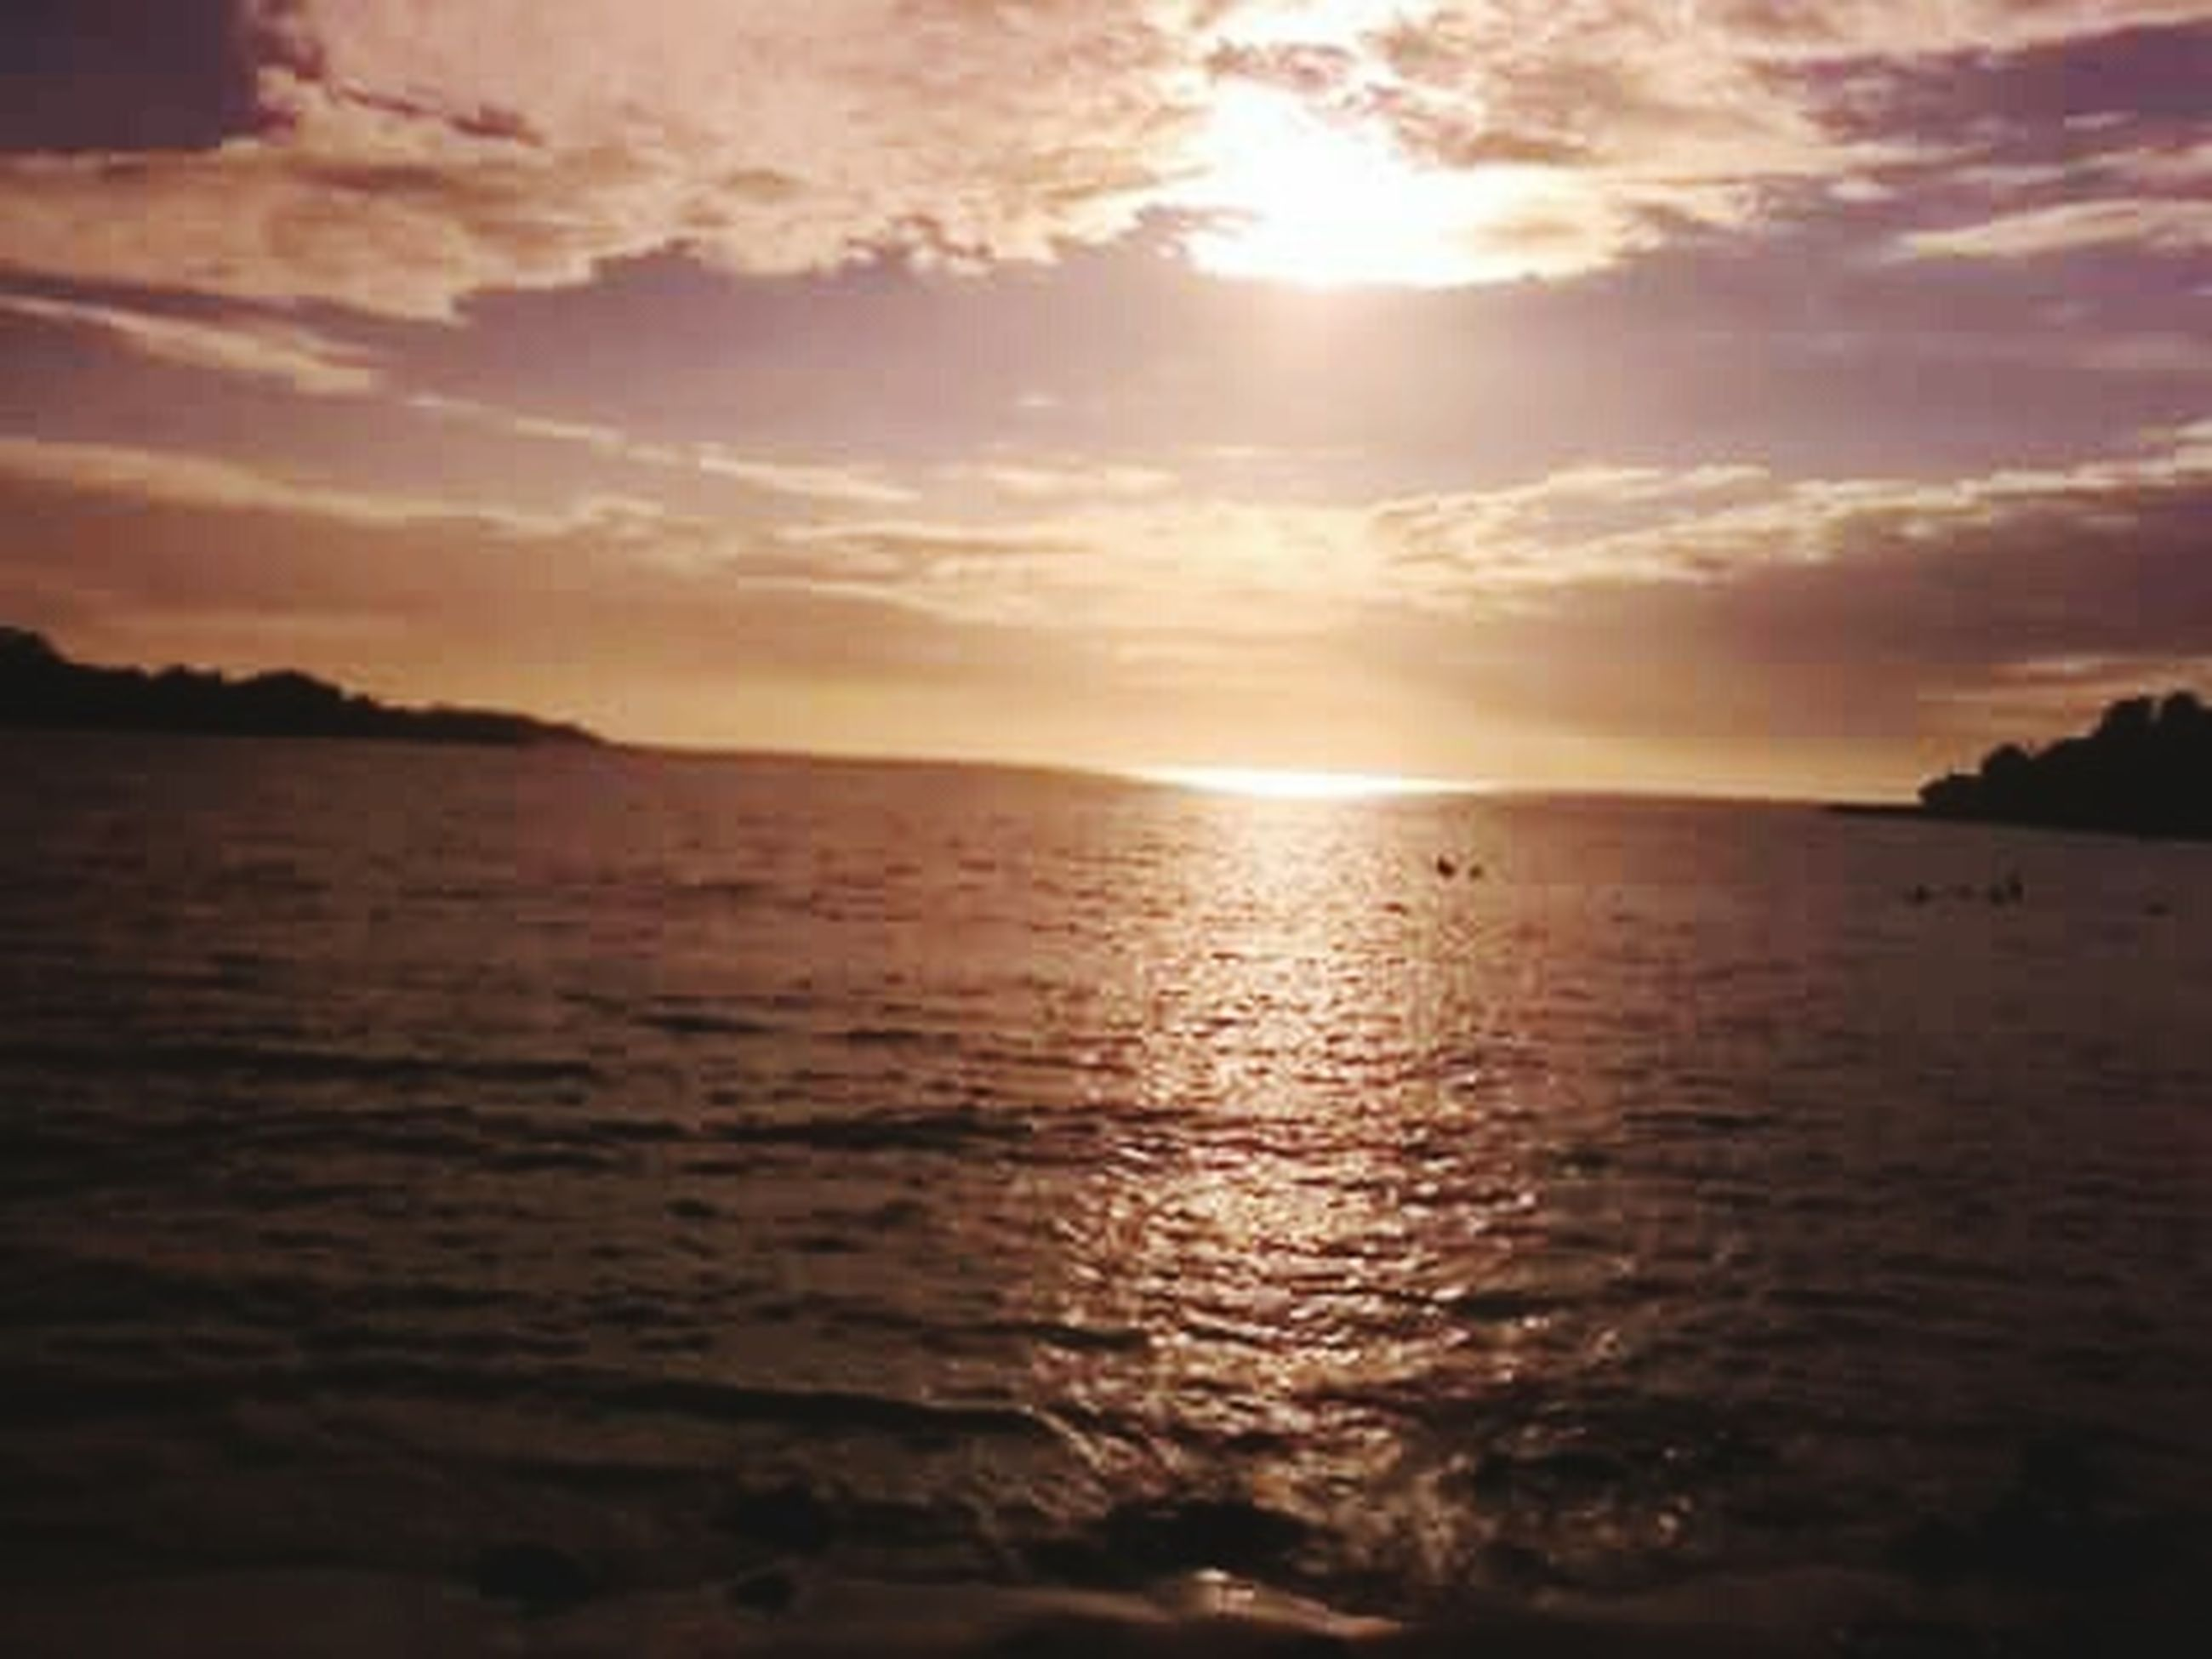 water, sunset, tranquil scene, scenics, sky, tranquility, beauty in nature, sea, sun, waterfront, reflection, cloud - sky, nature, idyllic, rippled, cloud, sunlight, silhouette, horizon over water, outdoors